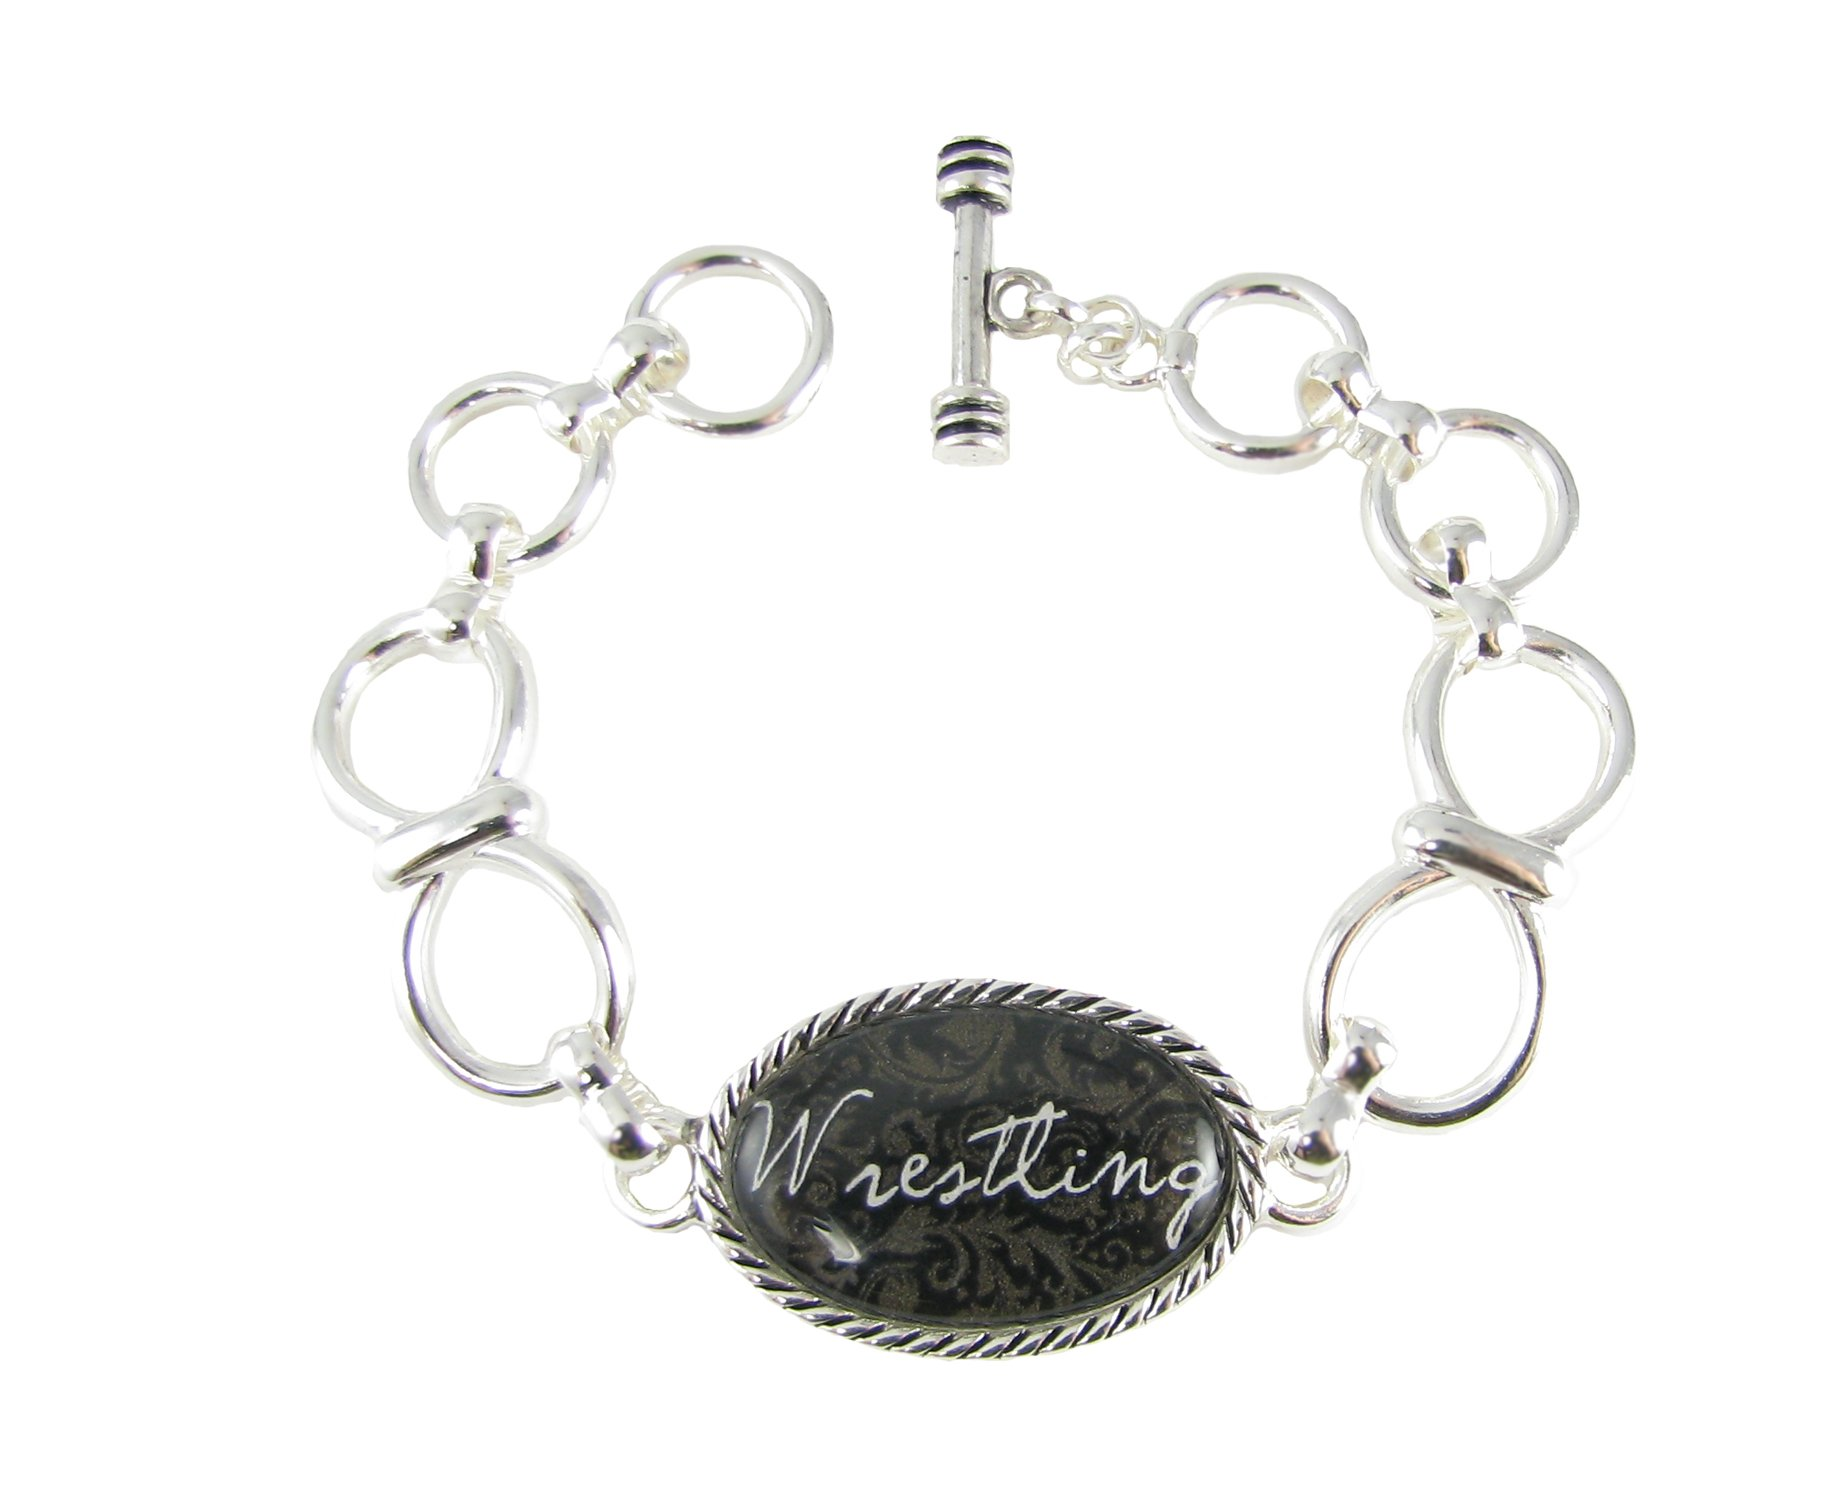 Wrestling Silver Infinity Chain Toggle Bracelet Jewelry Wrestler Coach Gift